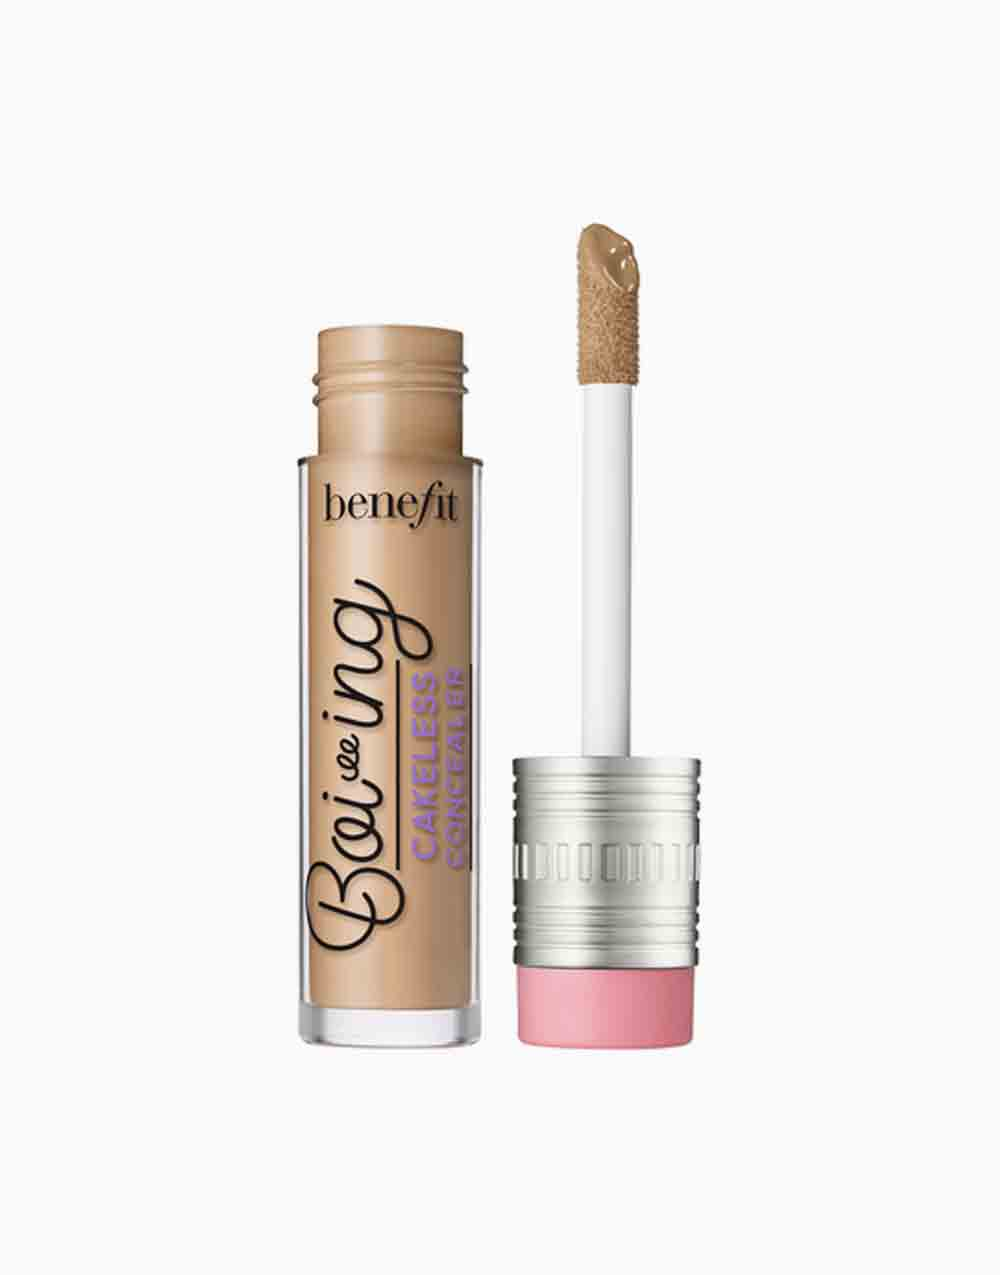 Boi-ing Cakeless Concealer by Benefit | Shade 7